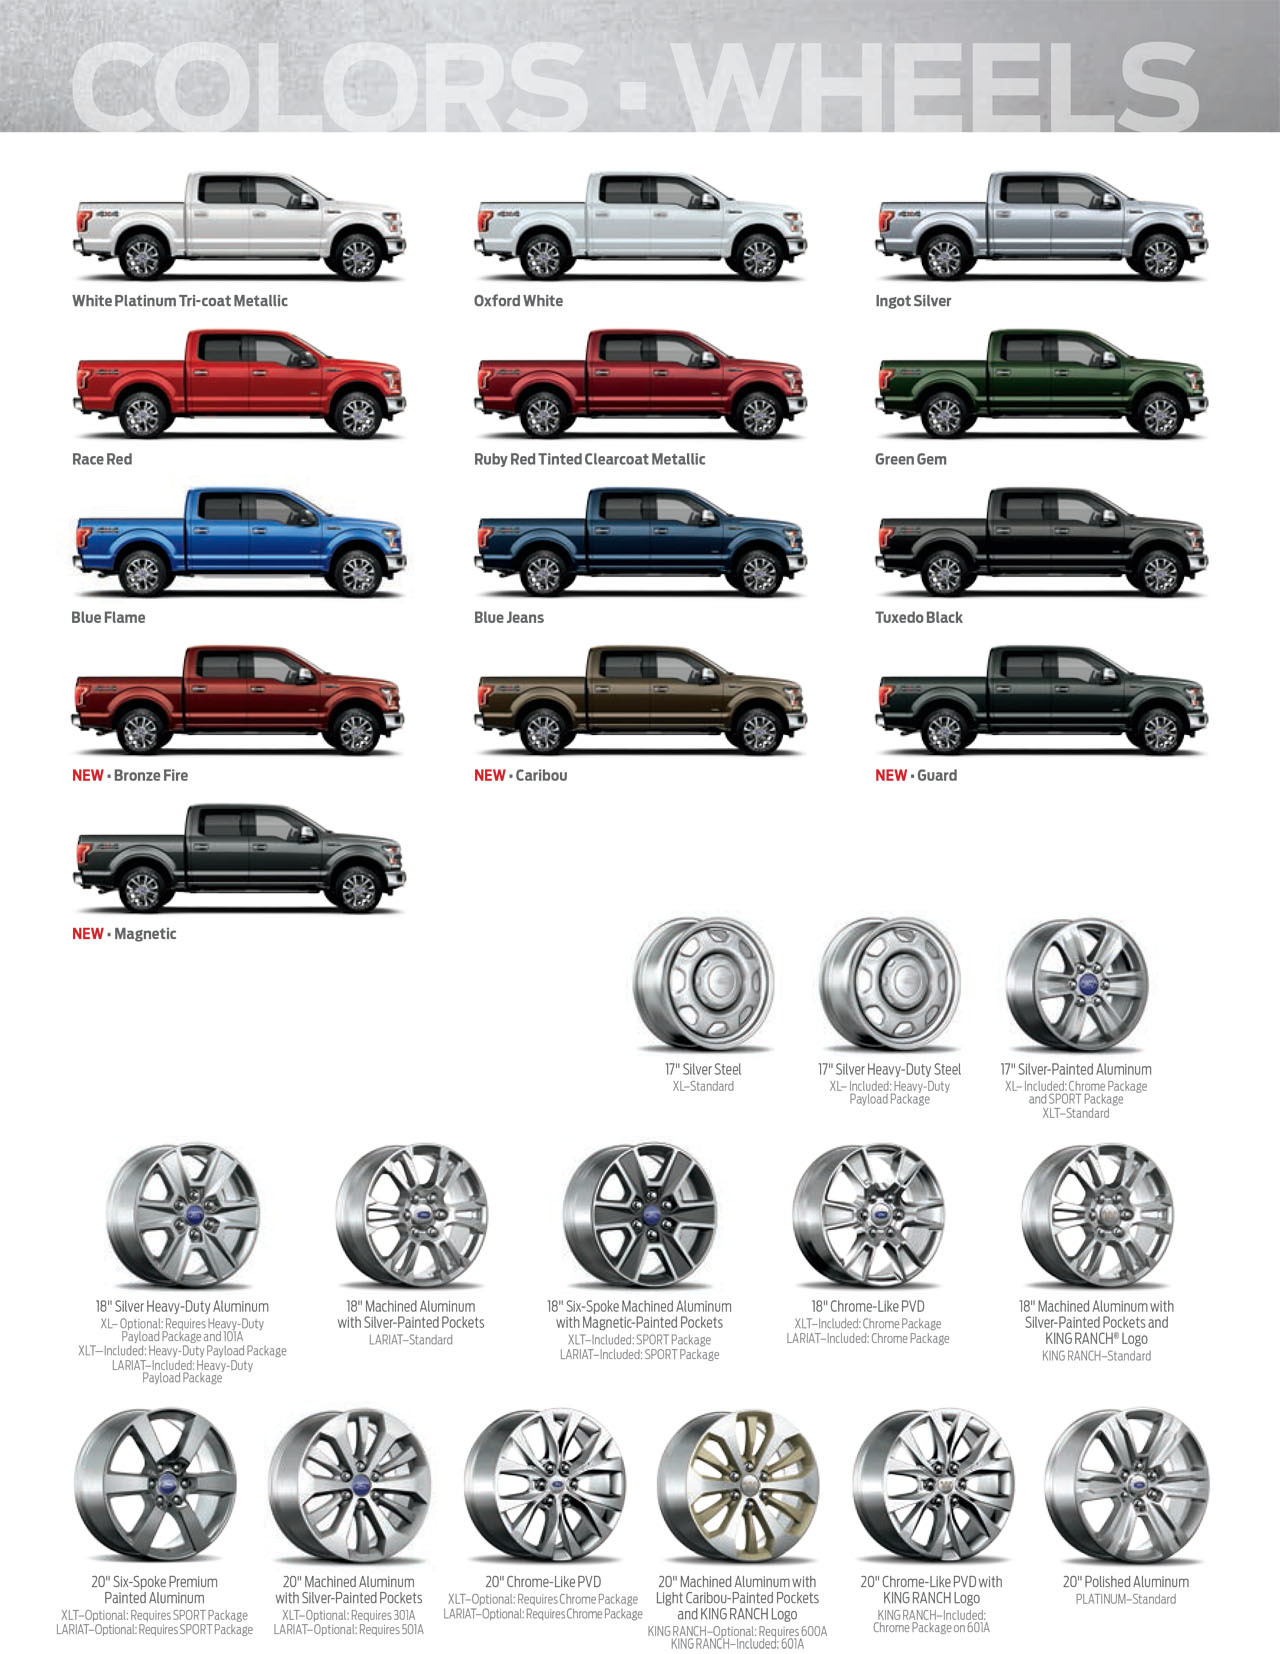 2014 ford f 350 truck xl - 2014 Ford F 350 Color Chart